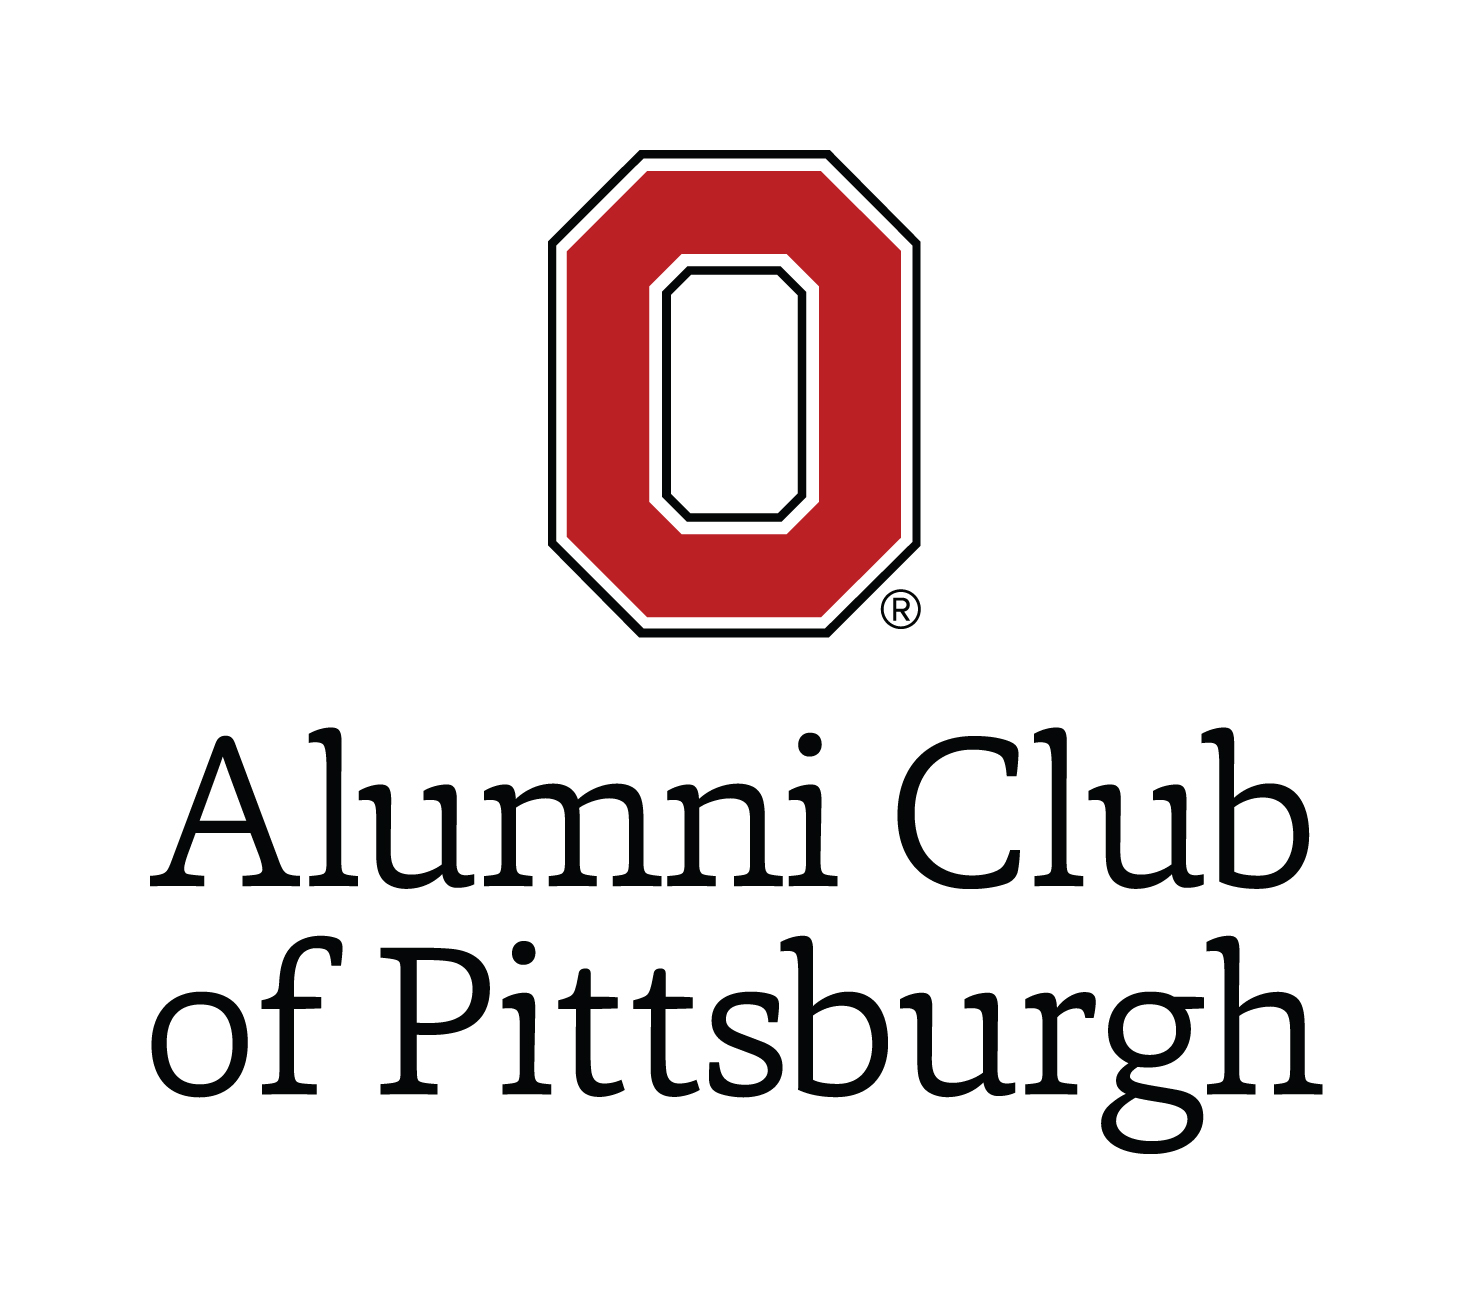 OSU Alumni Club of Pittsburgh